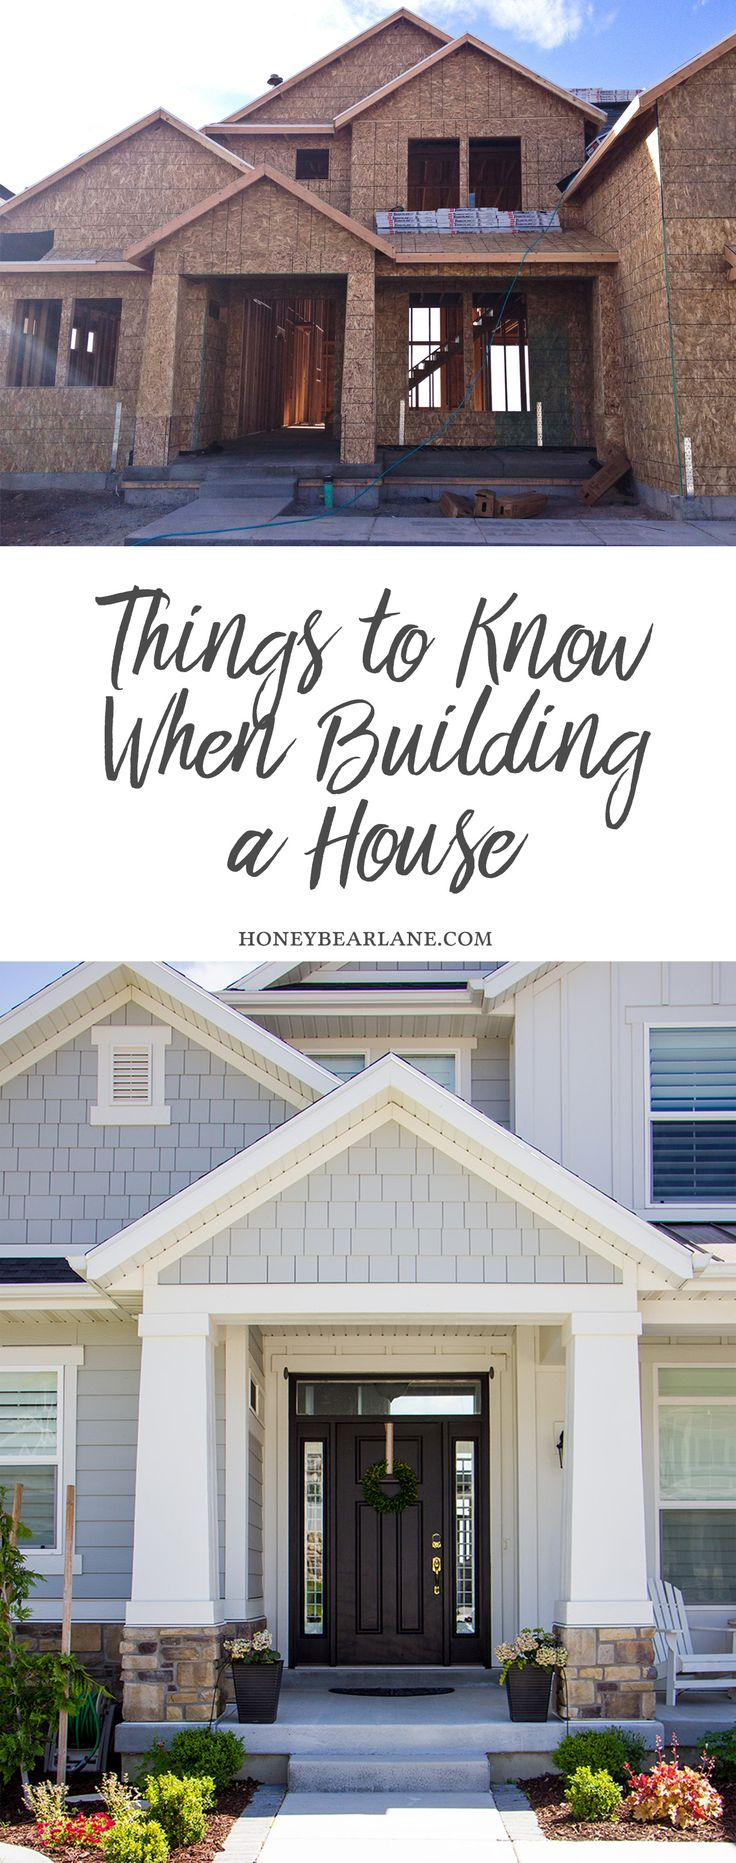 Best 25 building foundation ideas on pinterest deck for Things to consider when building a deck